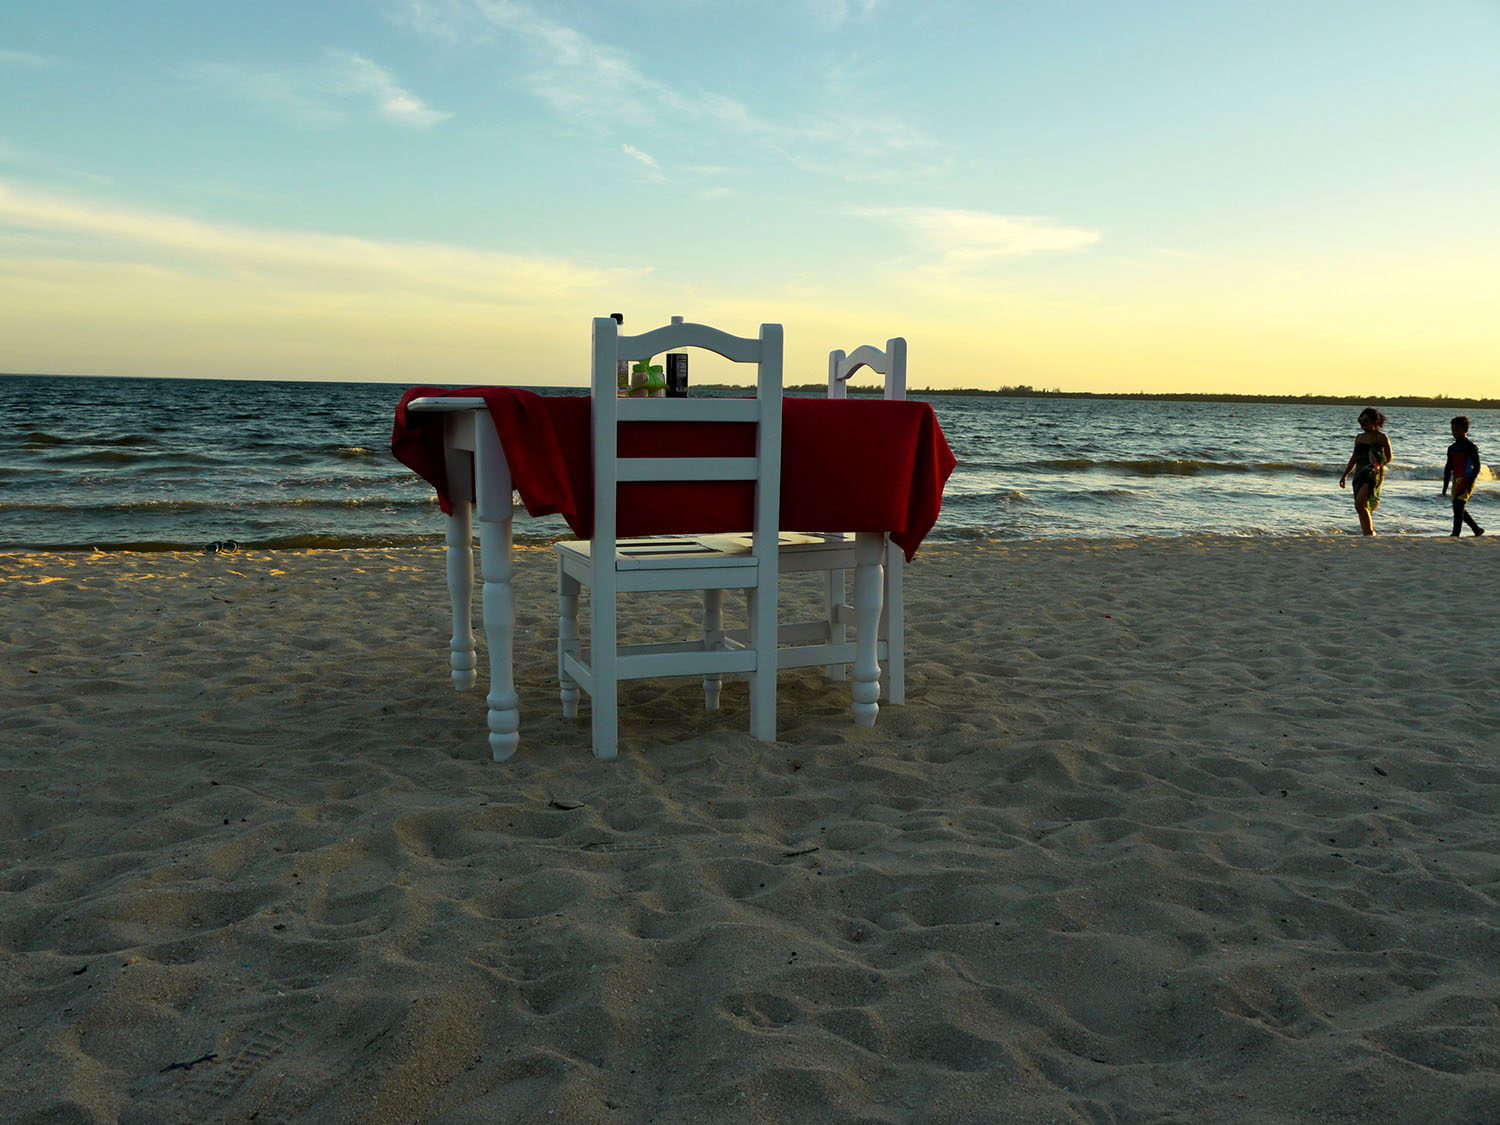 A dinner table in the sand.